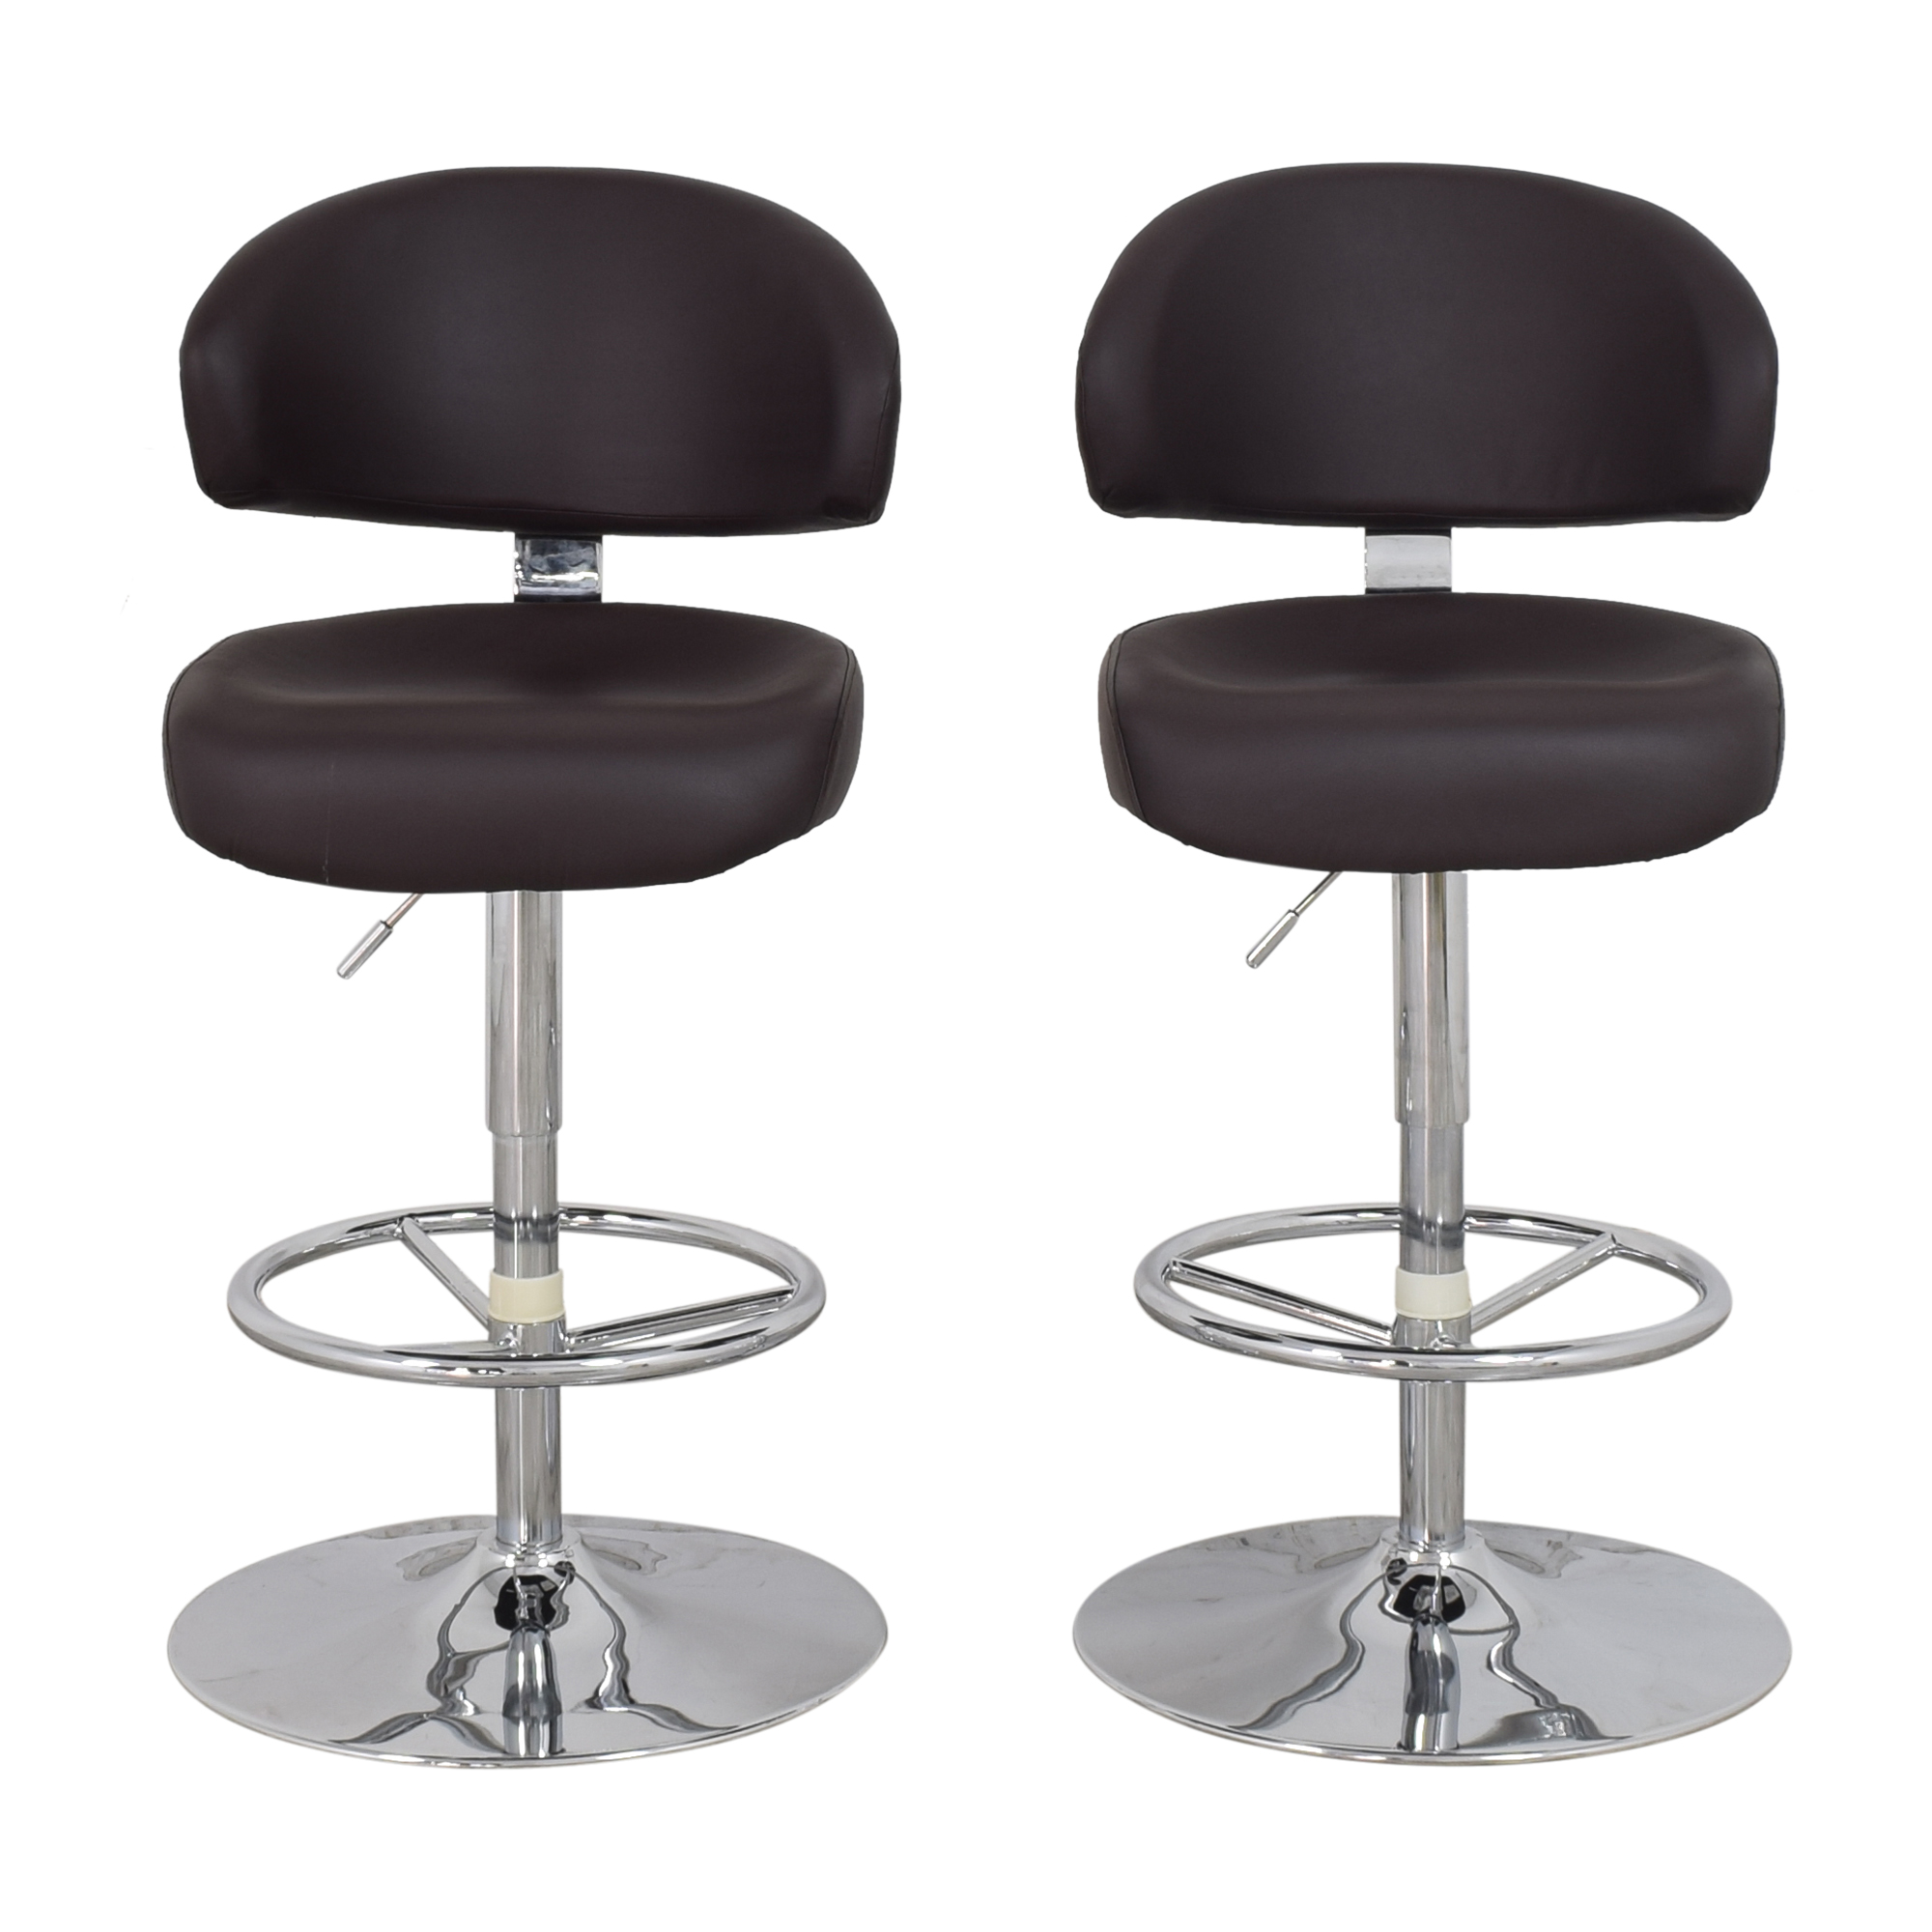 LumiSource LumiSource Bar Stools Chairs